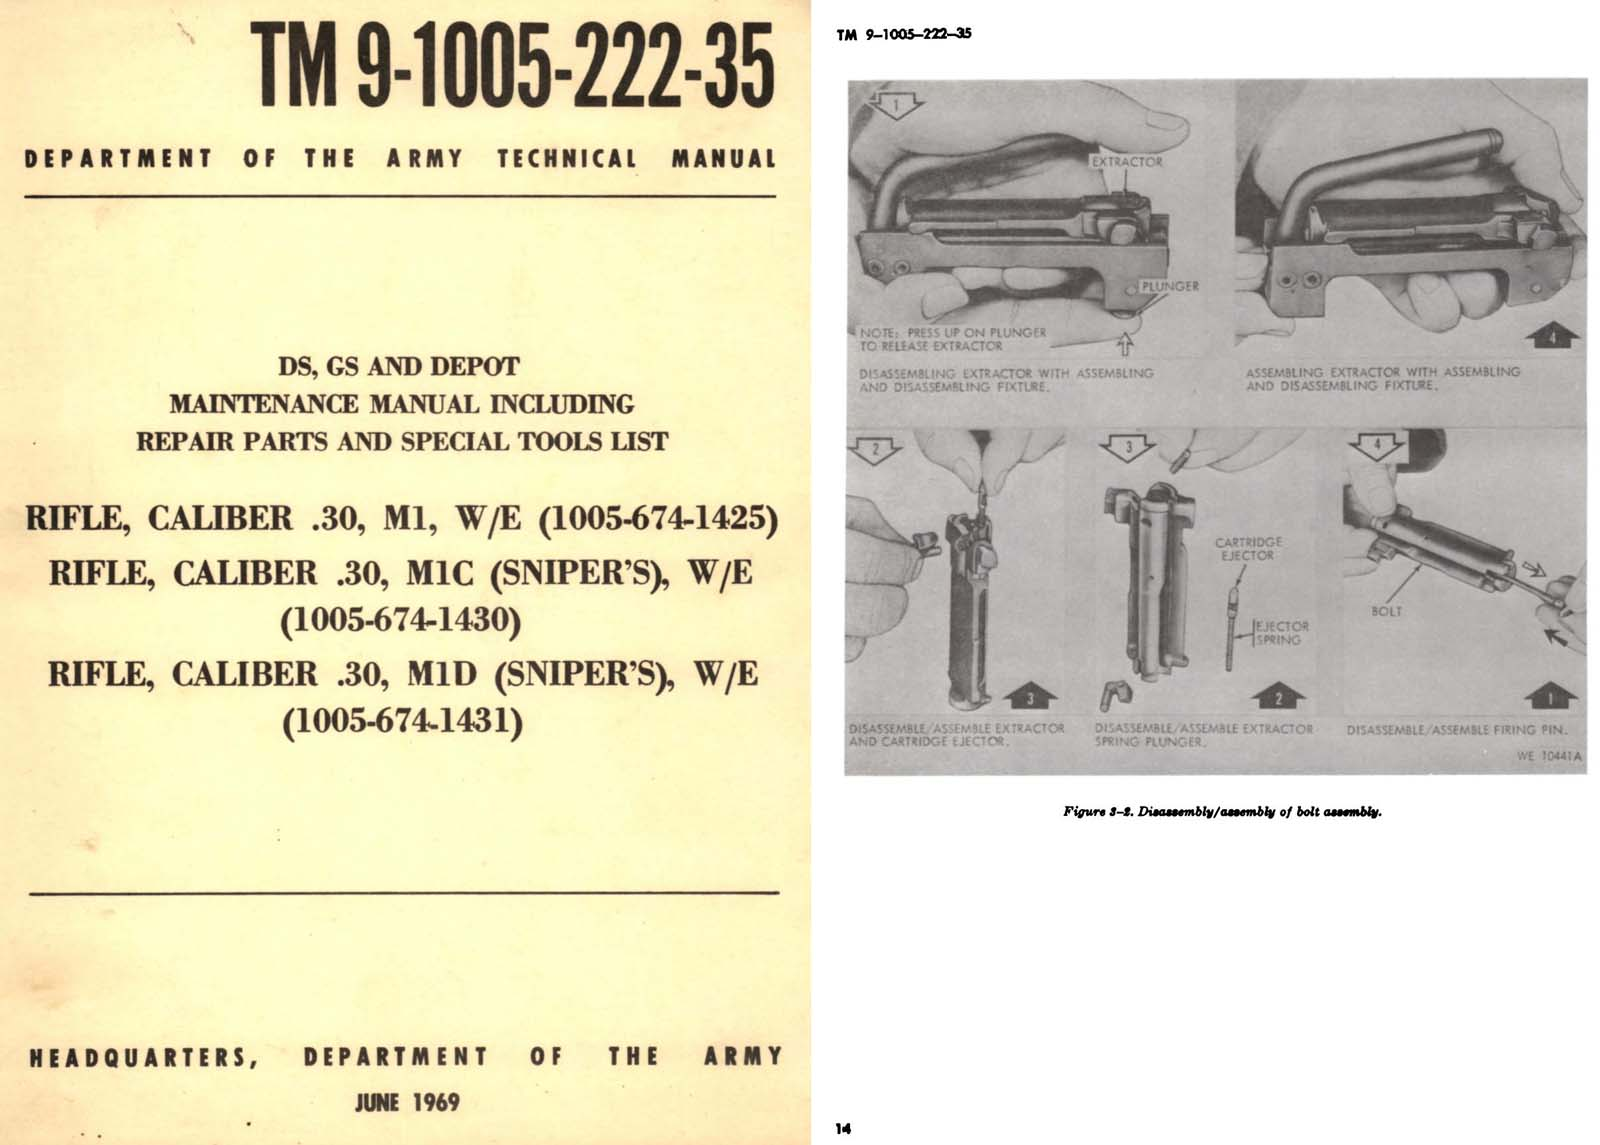 TM 9-1005-222-35 Rifle, M1 W/E, M1C, M1D (Snipers) Depot Maint Manual- DO Army